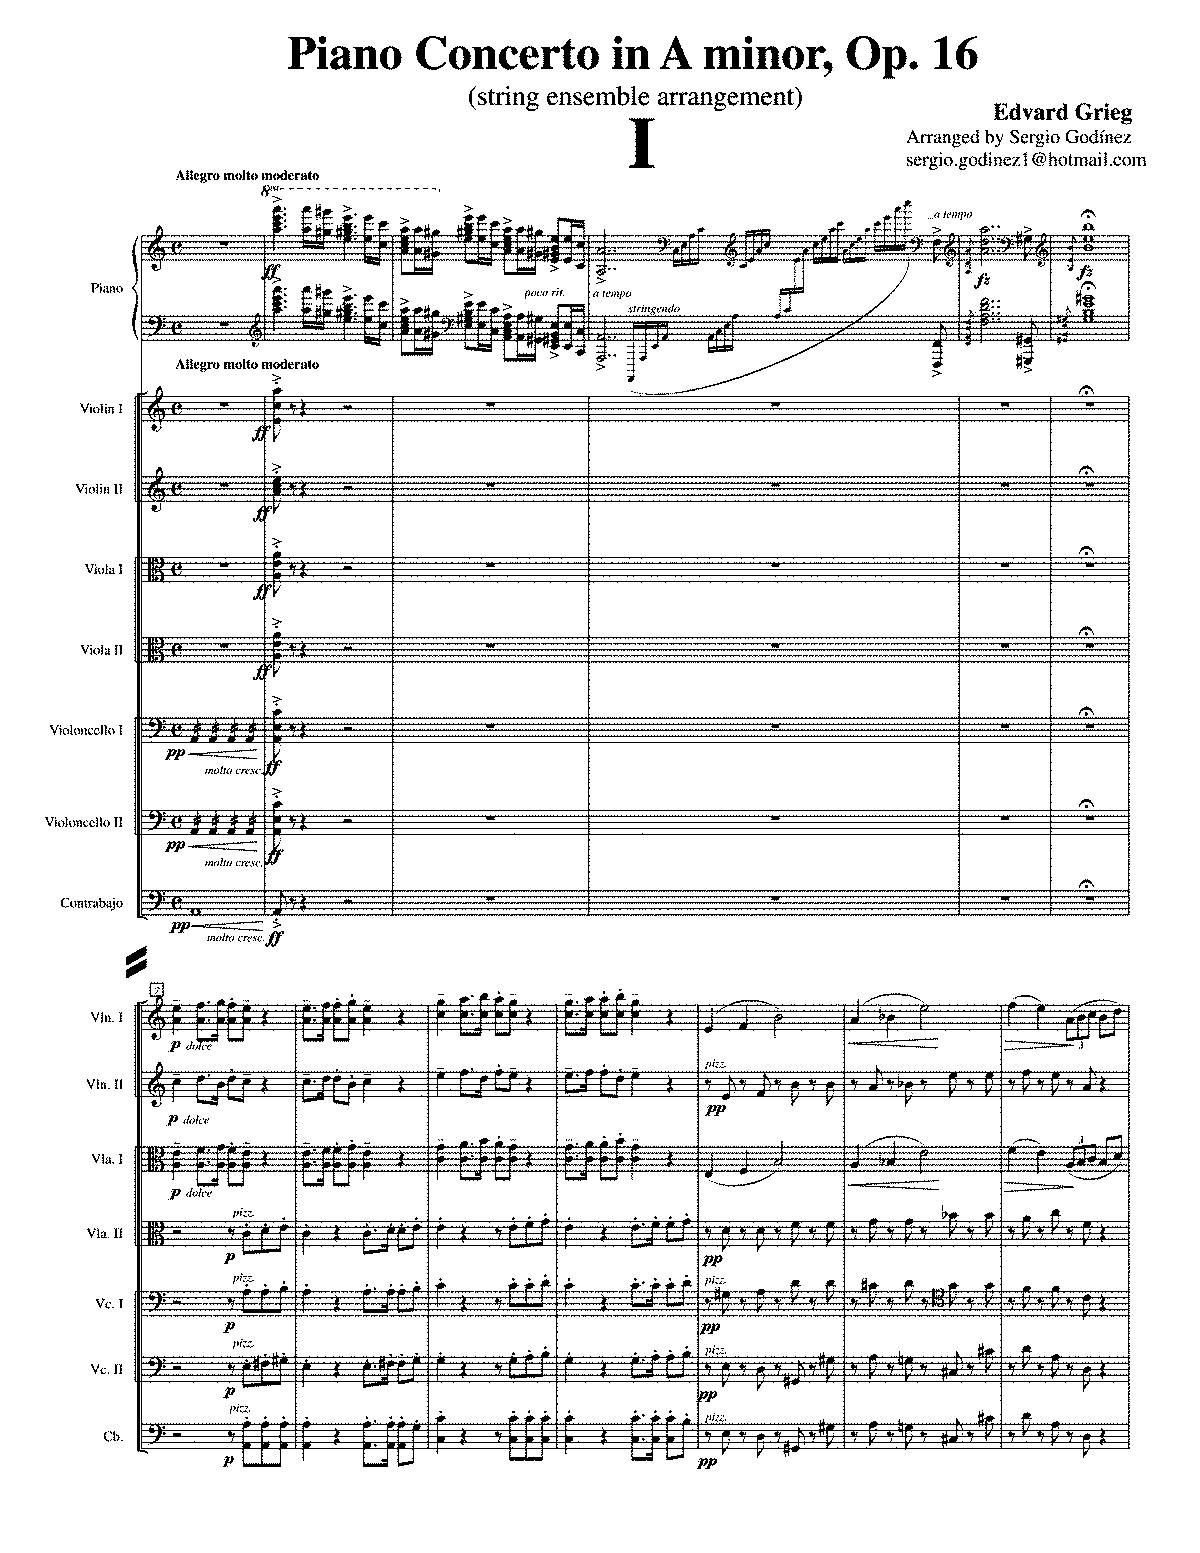 WIMA.04b3-Grieg Piano-Concerto-in-A-minor Op.16 string-ensemble-arrangement.pdf